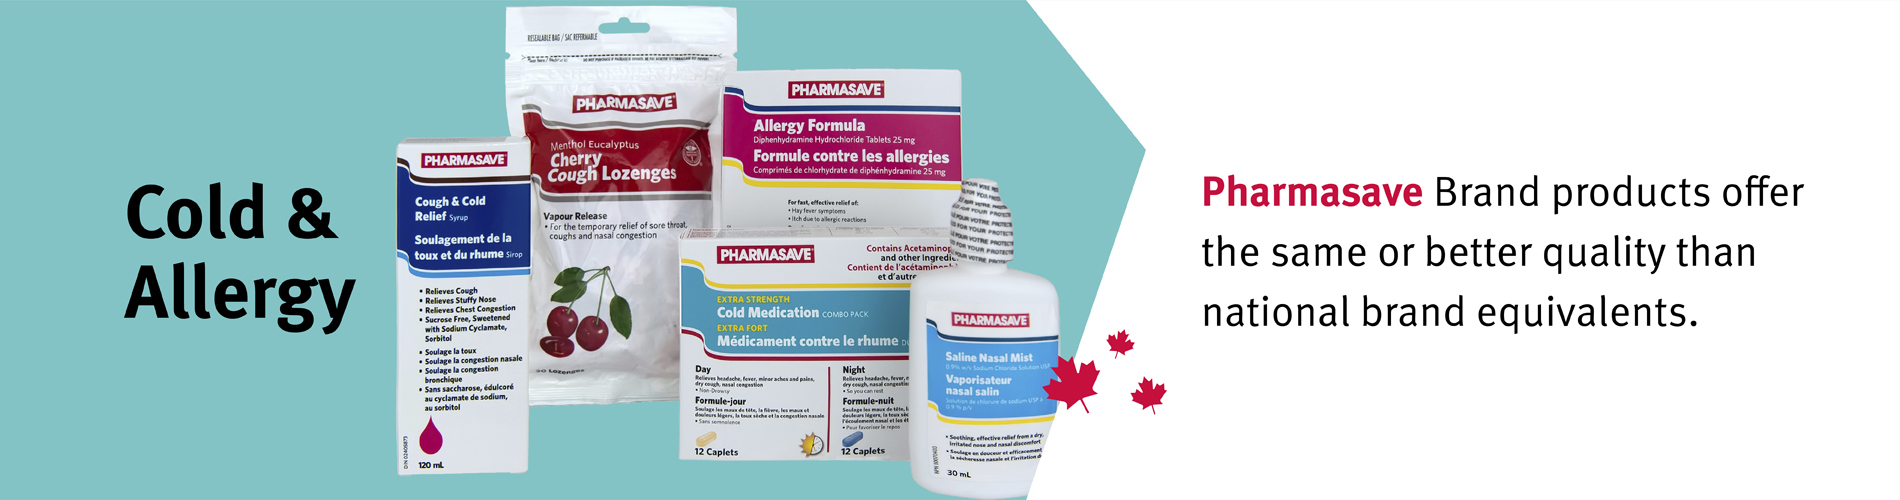 Learn more about Pharmasave's cold and allergy products.